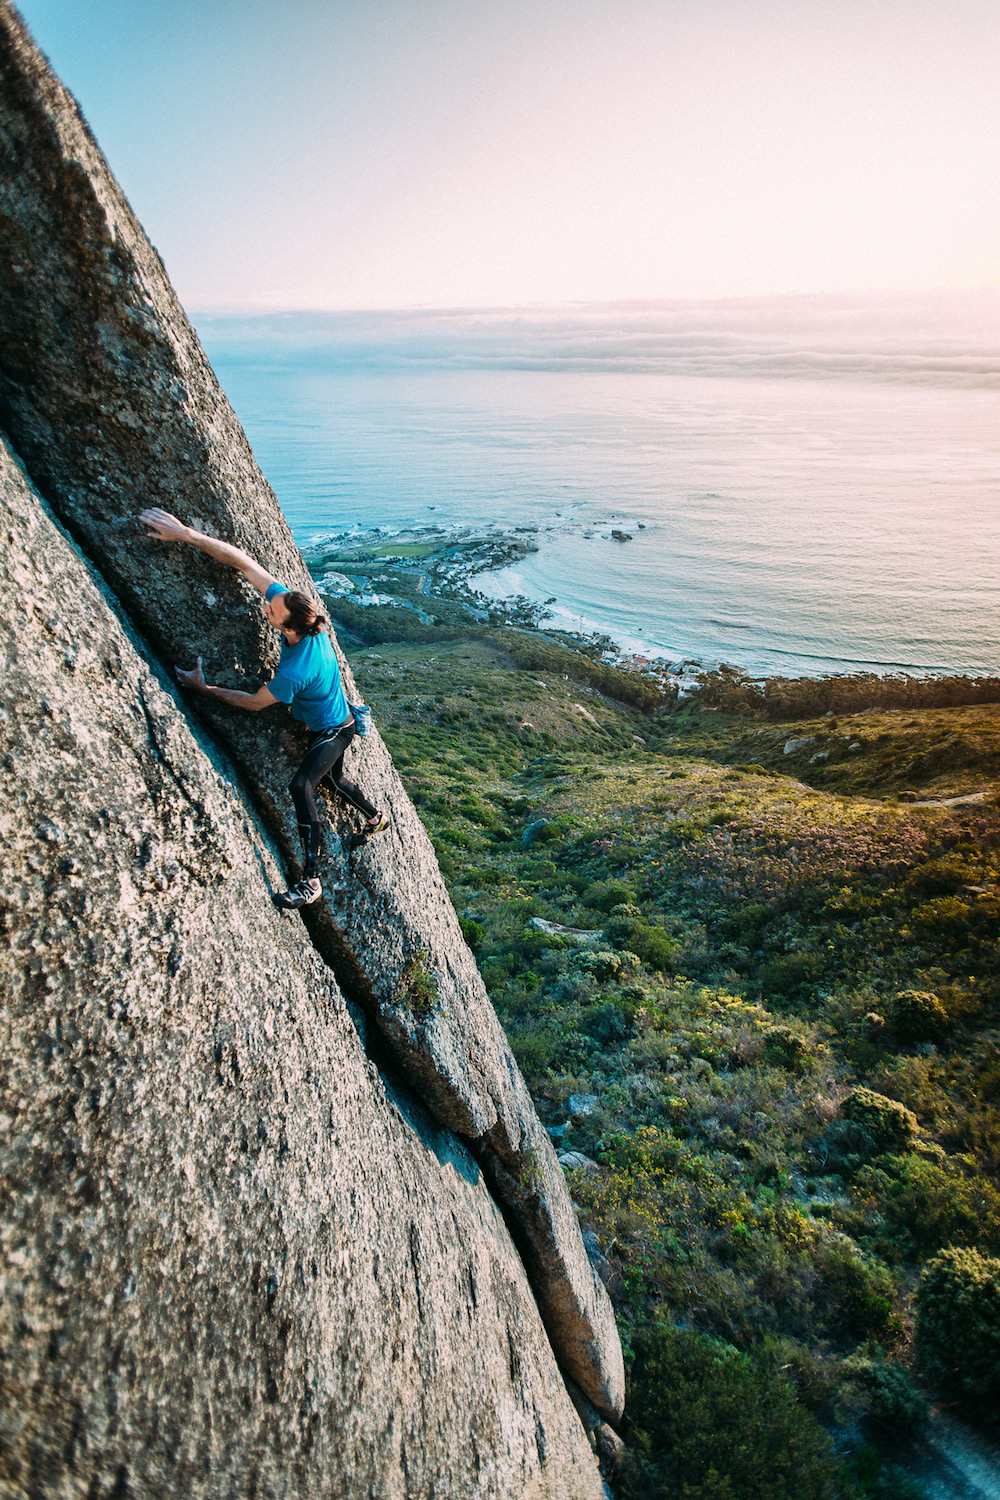 Lion Heart (5.11b/6c). Reaching the top on the first free solo ascent of Lion Heart. Lion's Head. Cape Town. Photo: Micky Wieswedel.